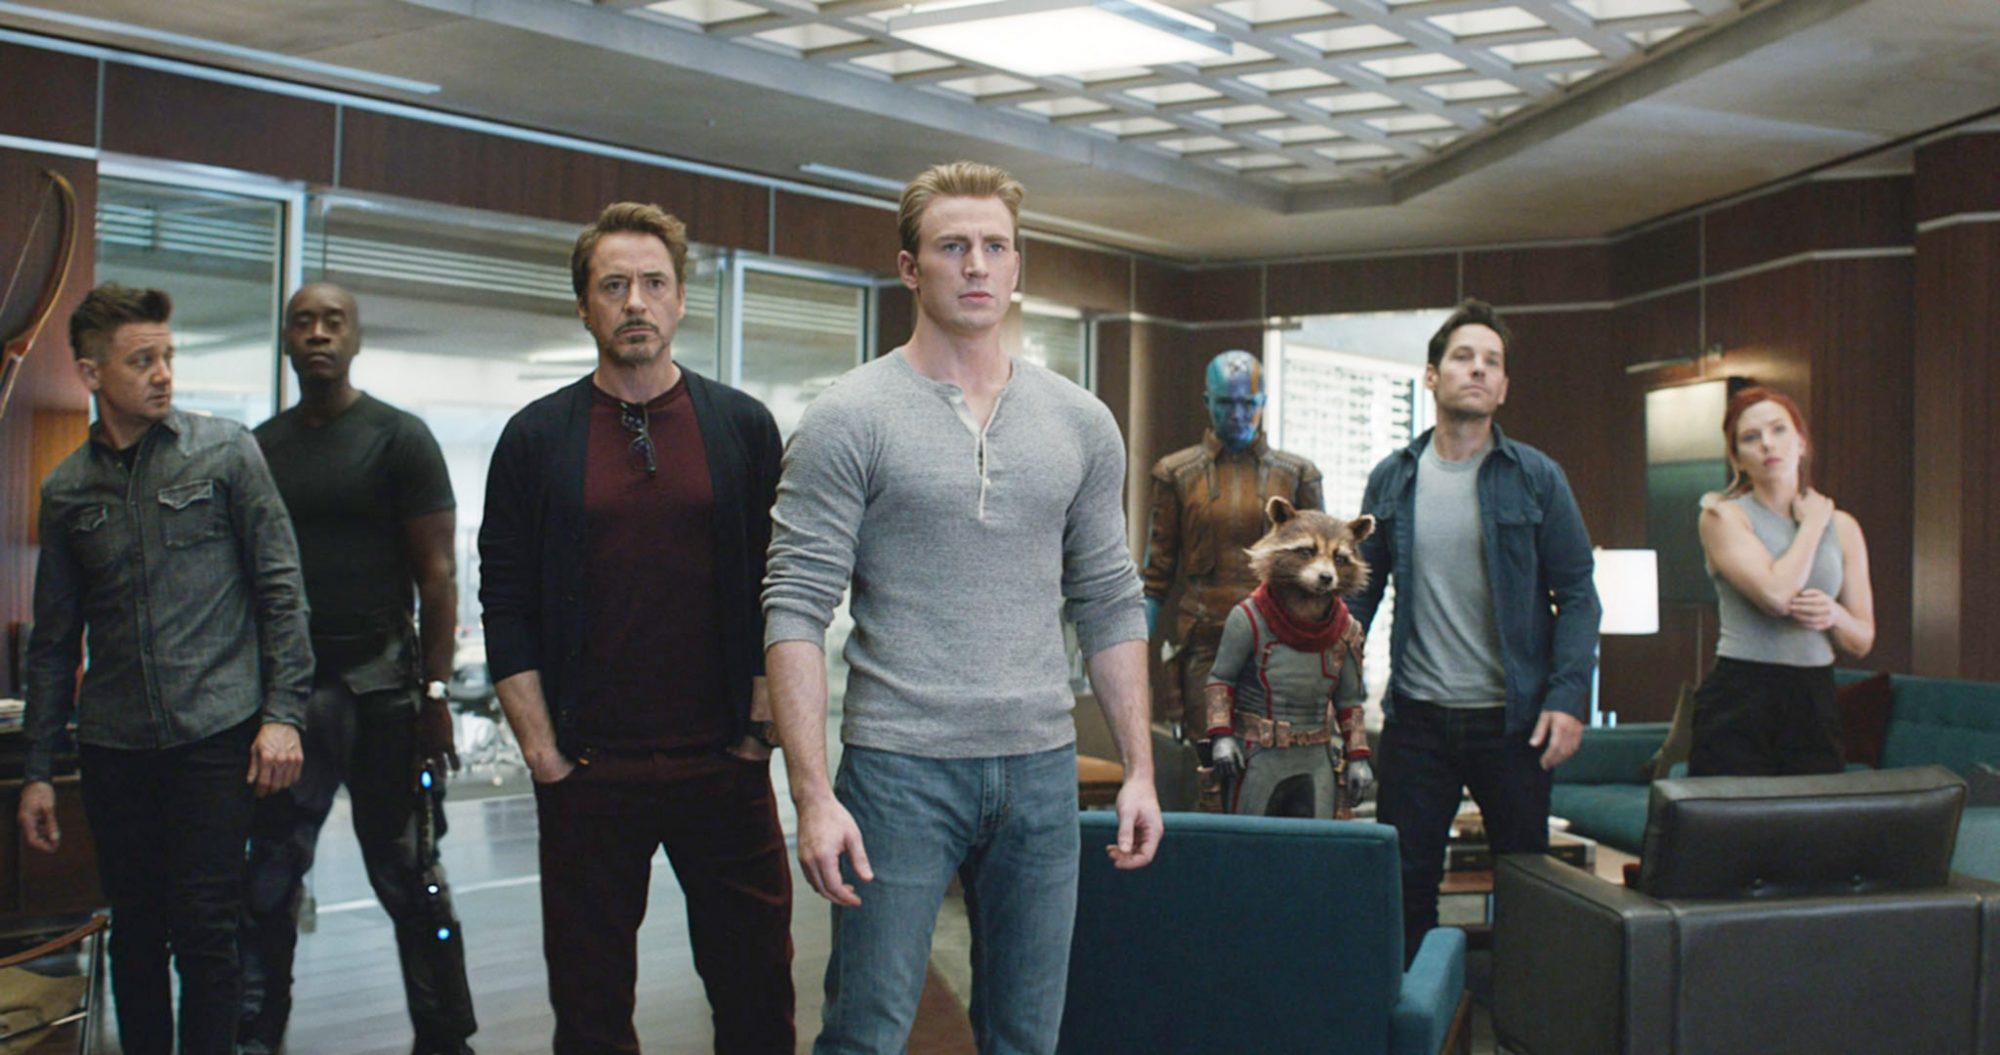 Avengers Endgame Review - The remaining Avengers